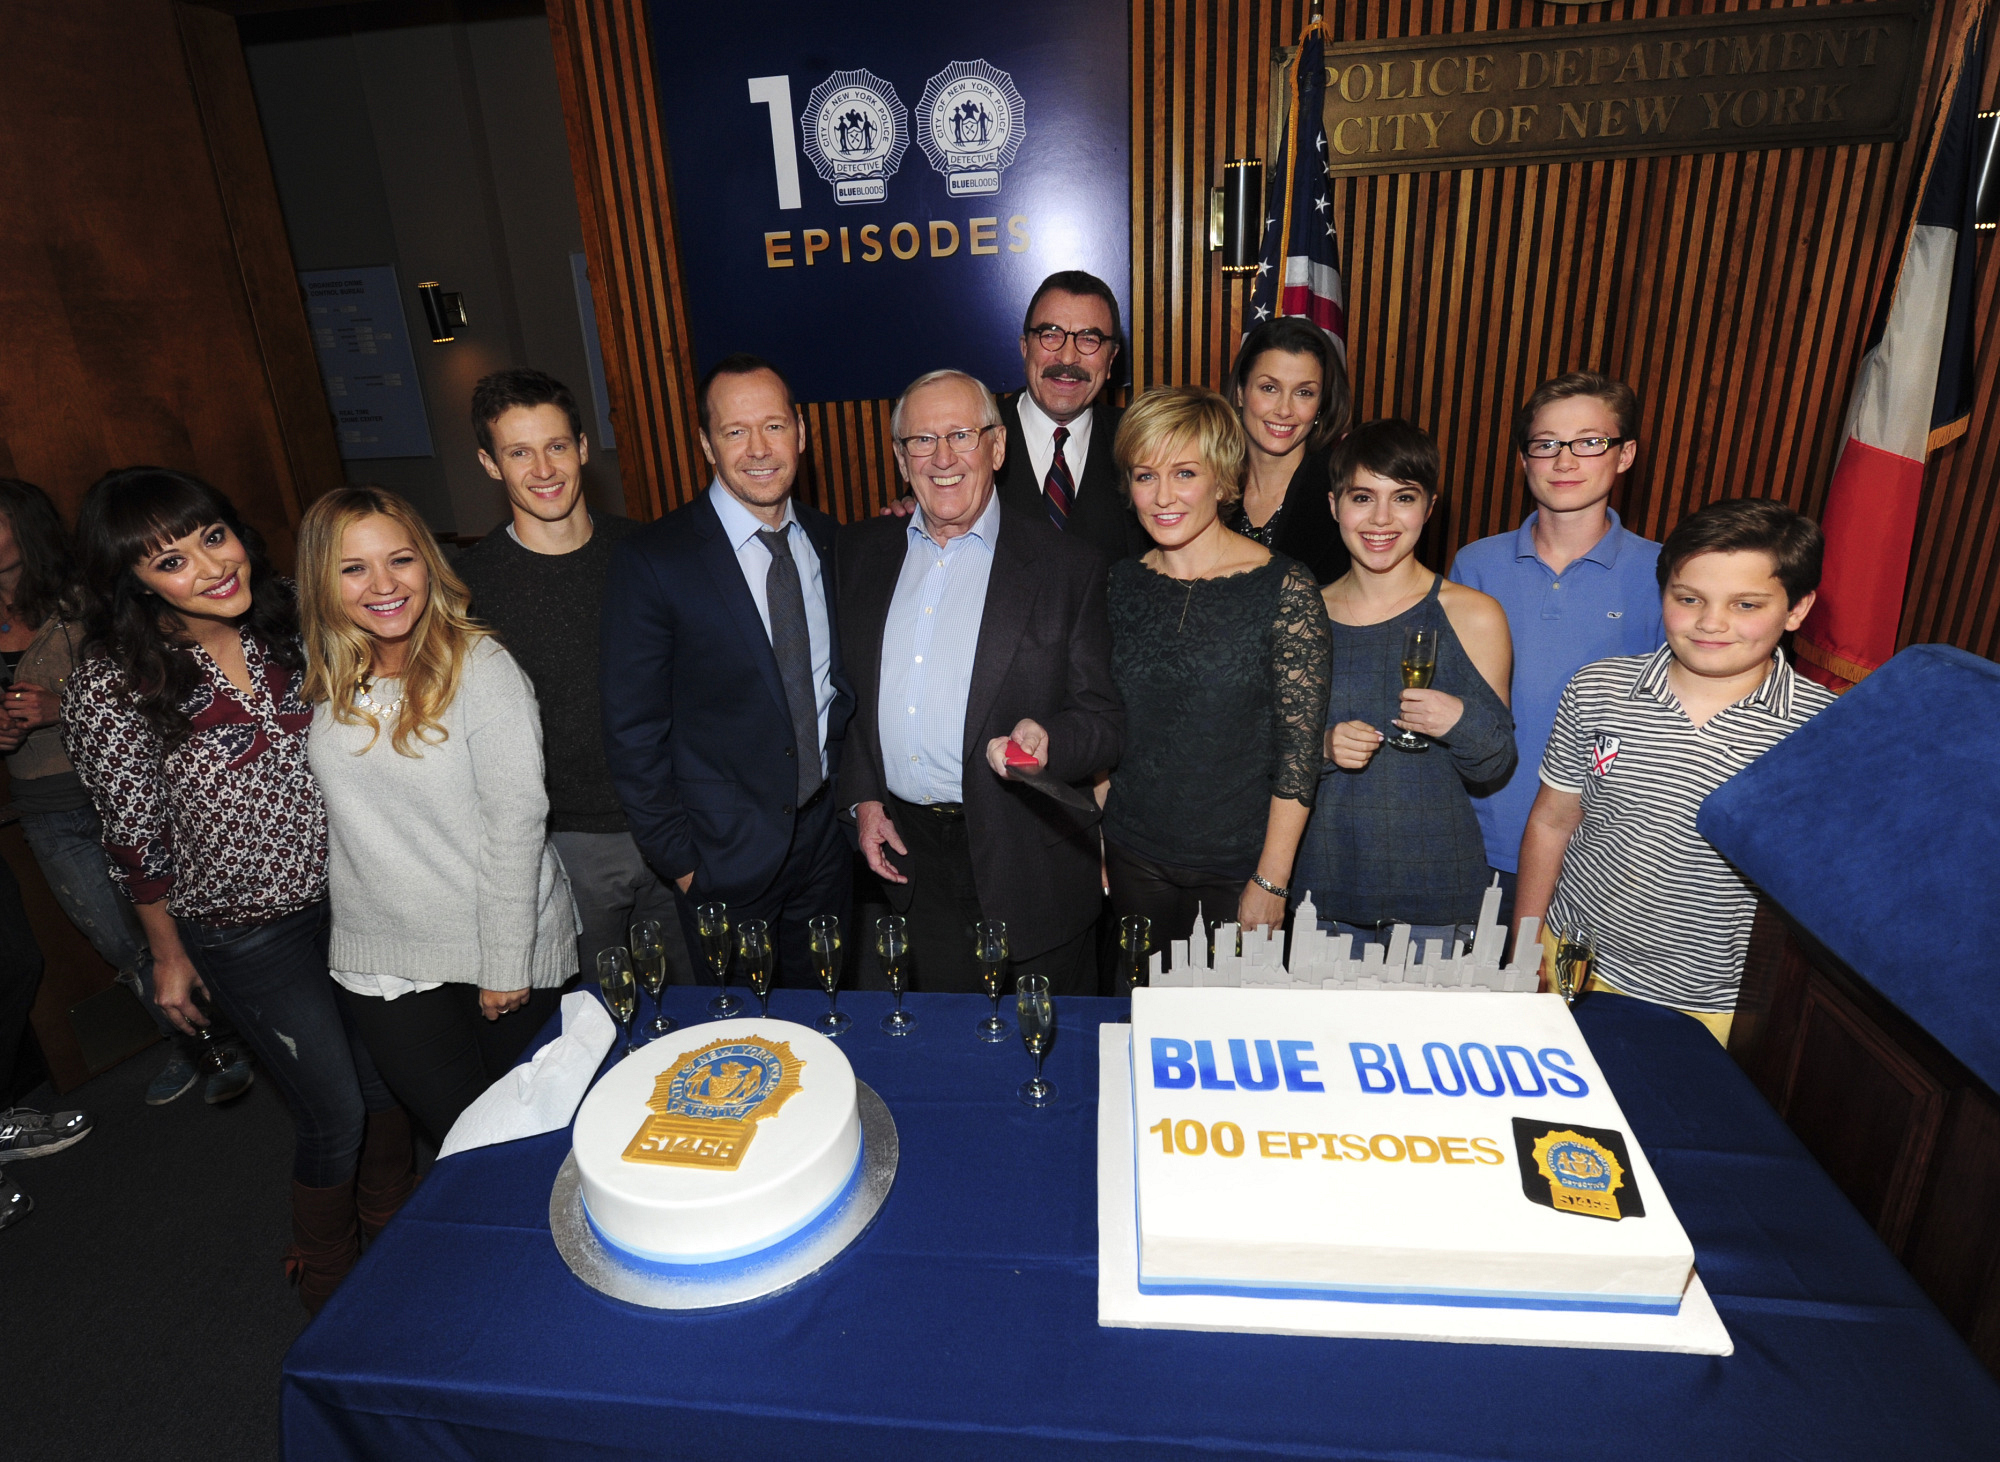 Blue Bloods Celebrates Its 100th Episode